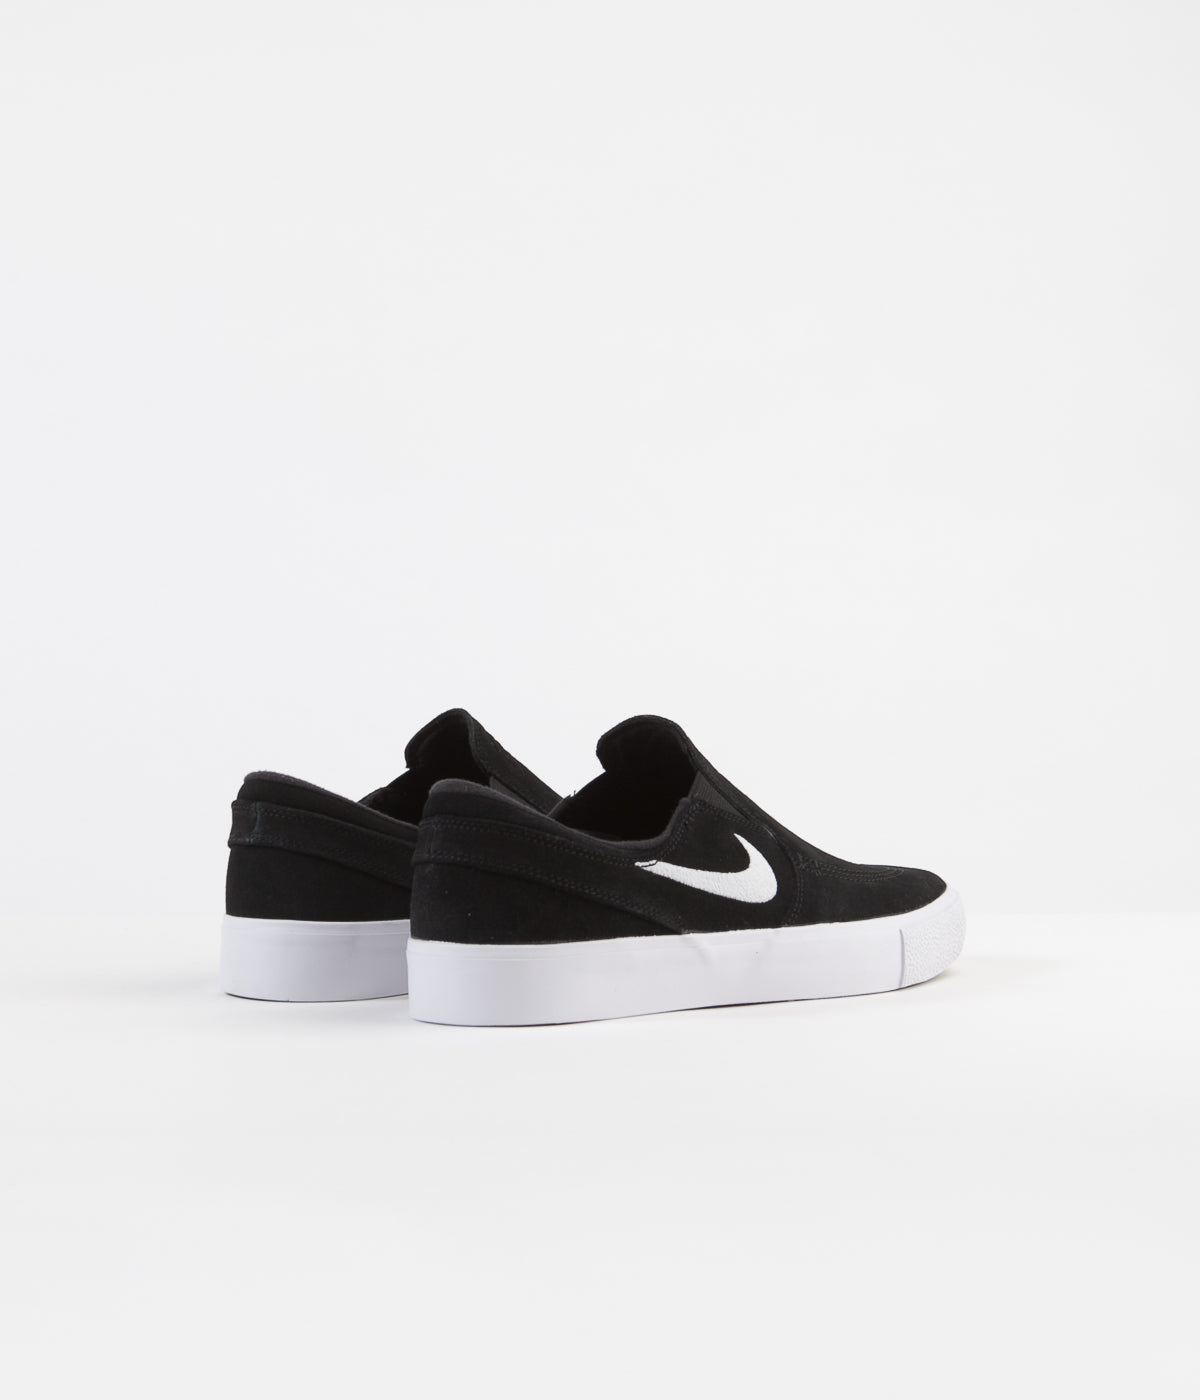 Nike SB Janoski Slip On Remastered Shoes - Black / White - White